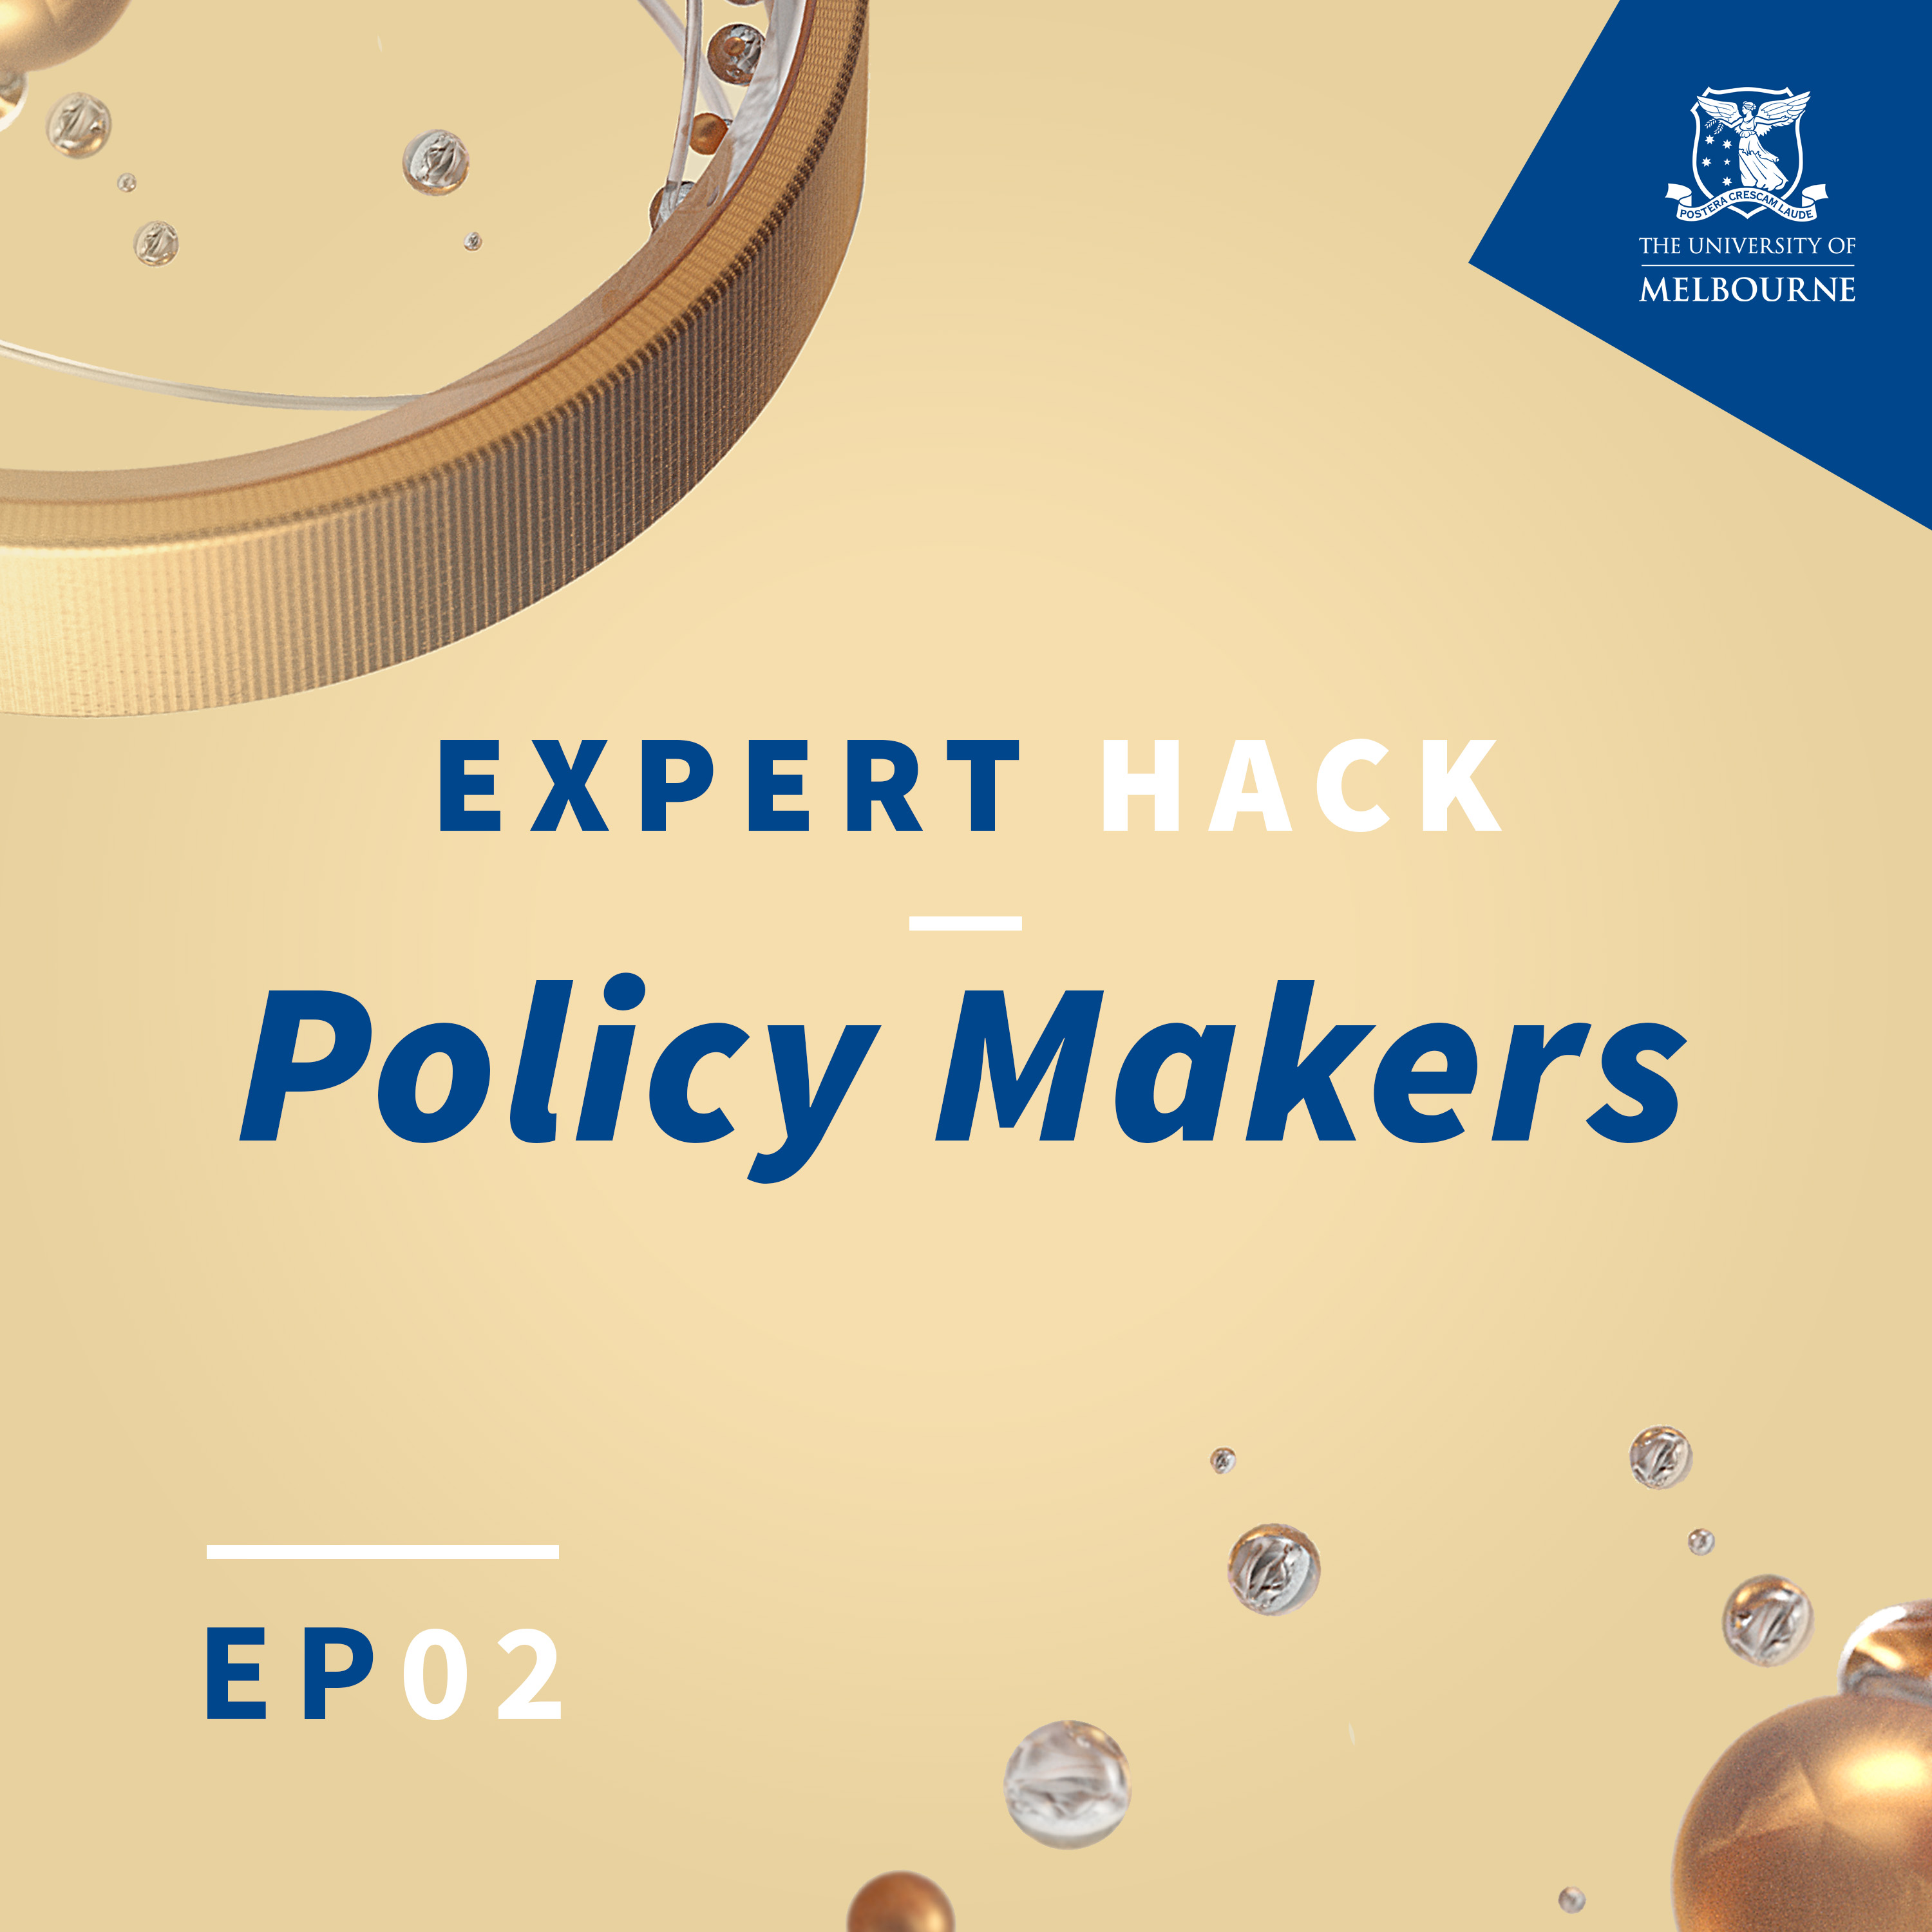 Expert Hack episode 02 artwork